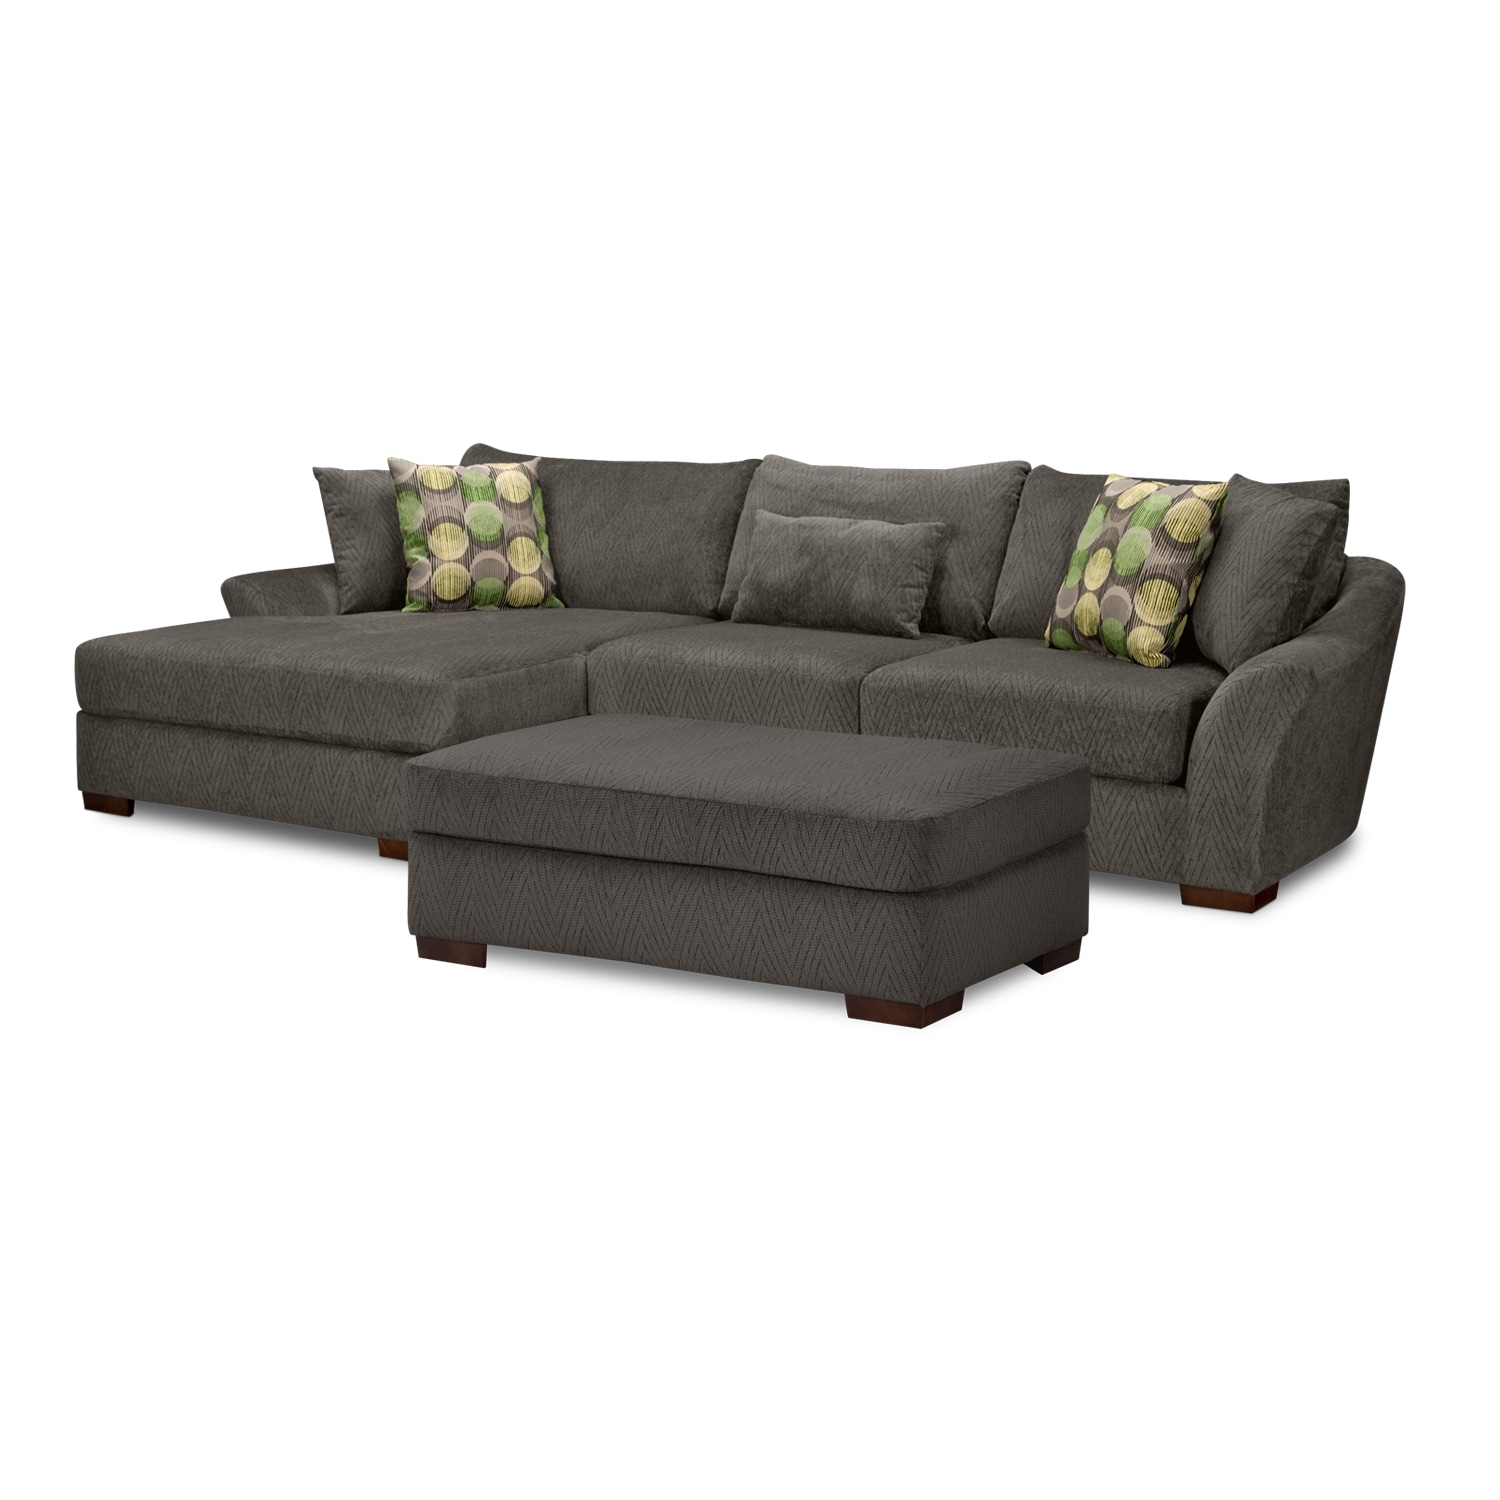 Living Room Furniture - Oasis 2 Pc. Sectional and Ottoman